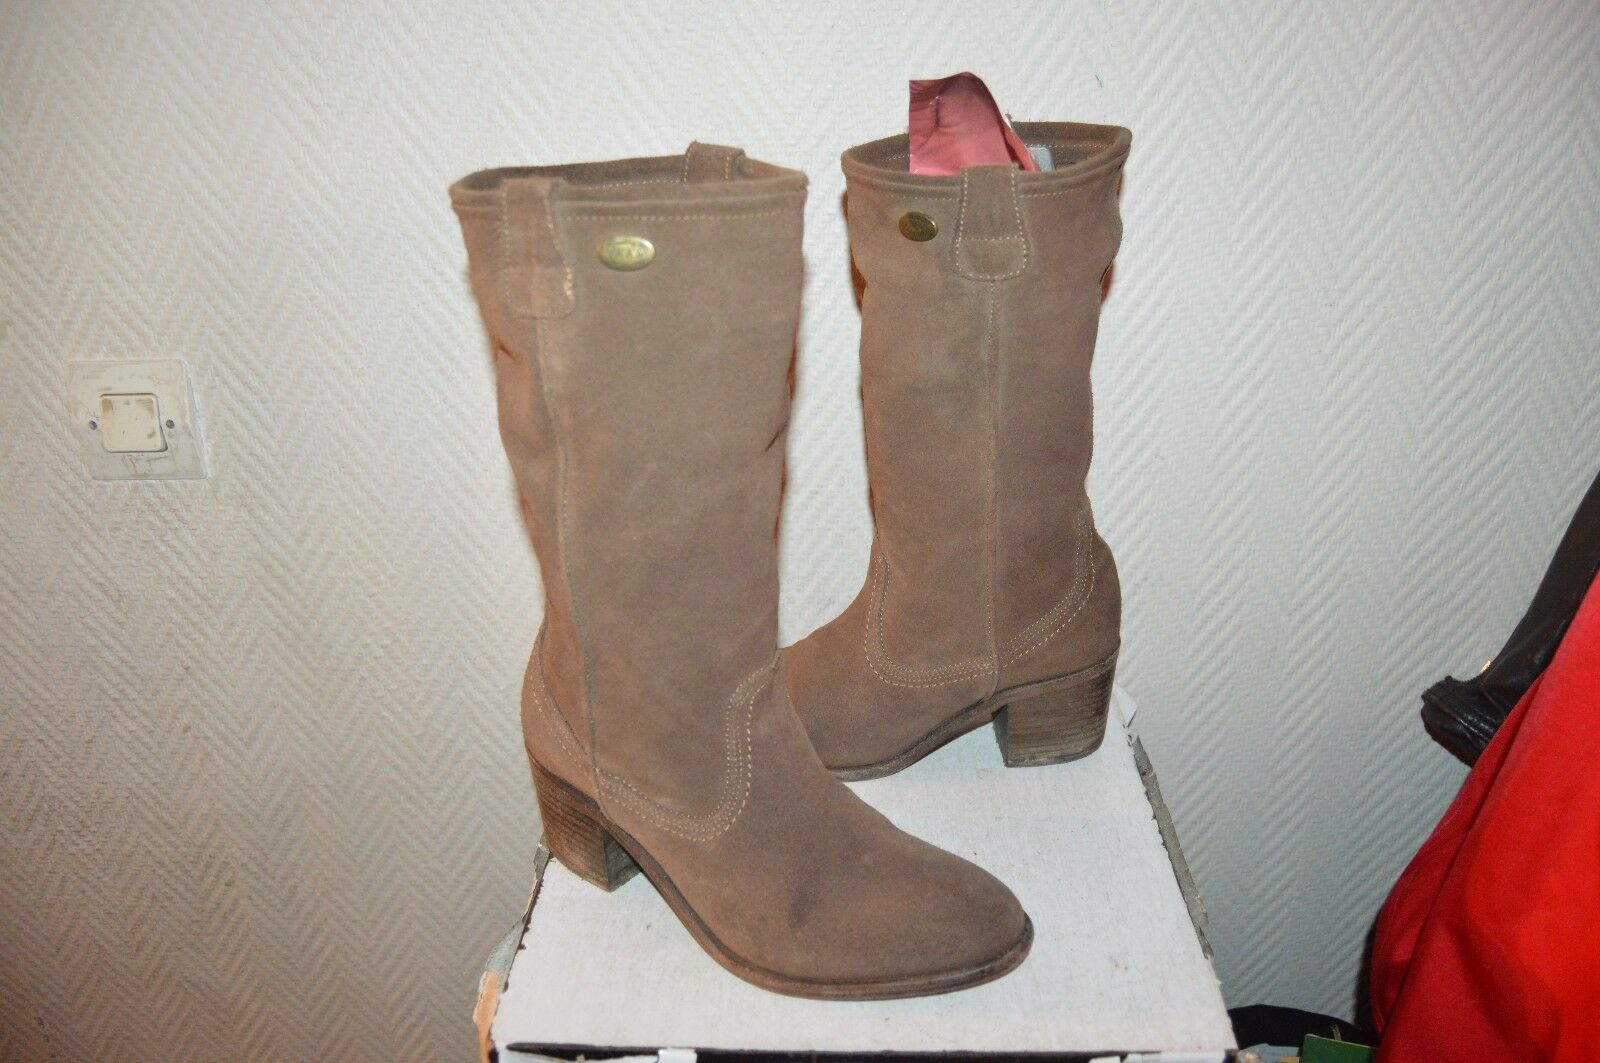 BOTTES CUIR  IKKS  TAILLE 36 LEATHER bottes bottes bottes BE